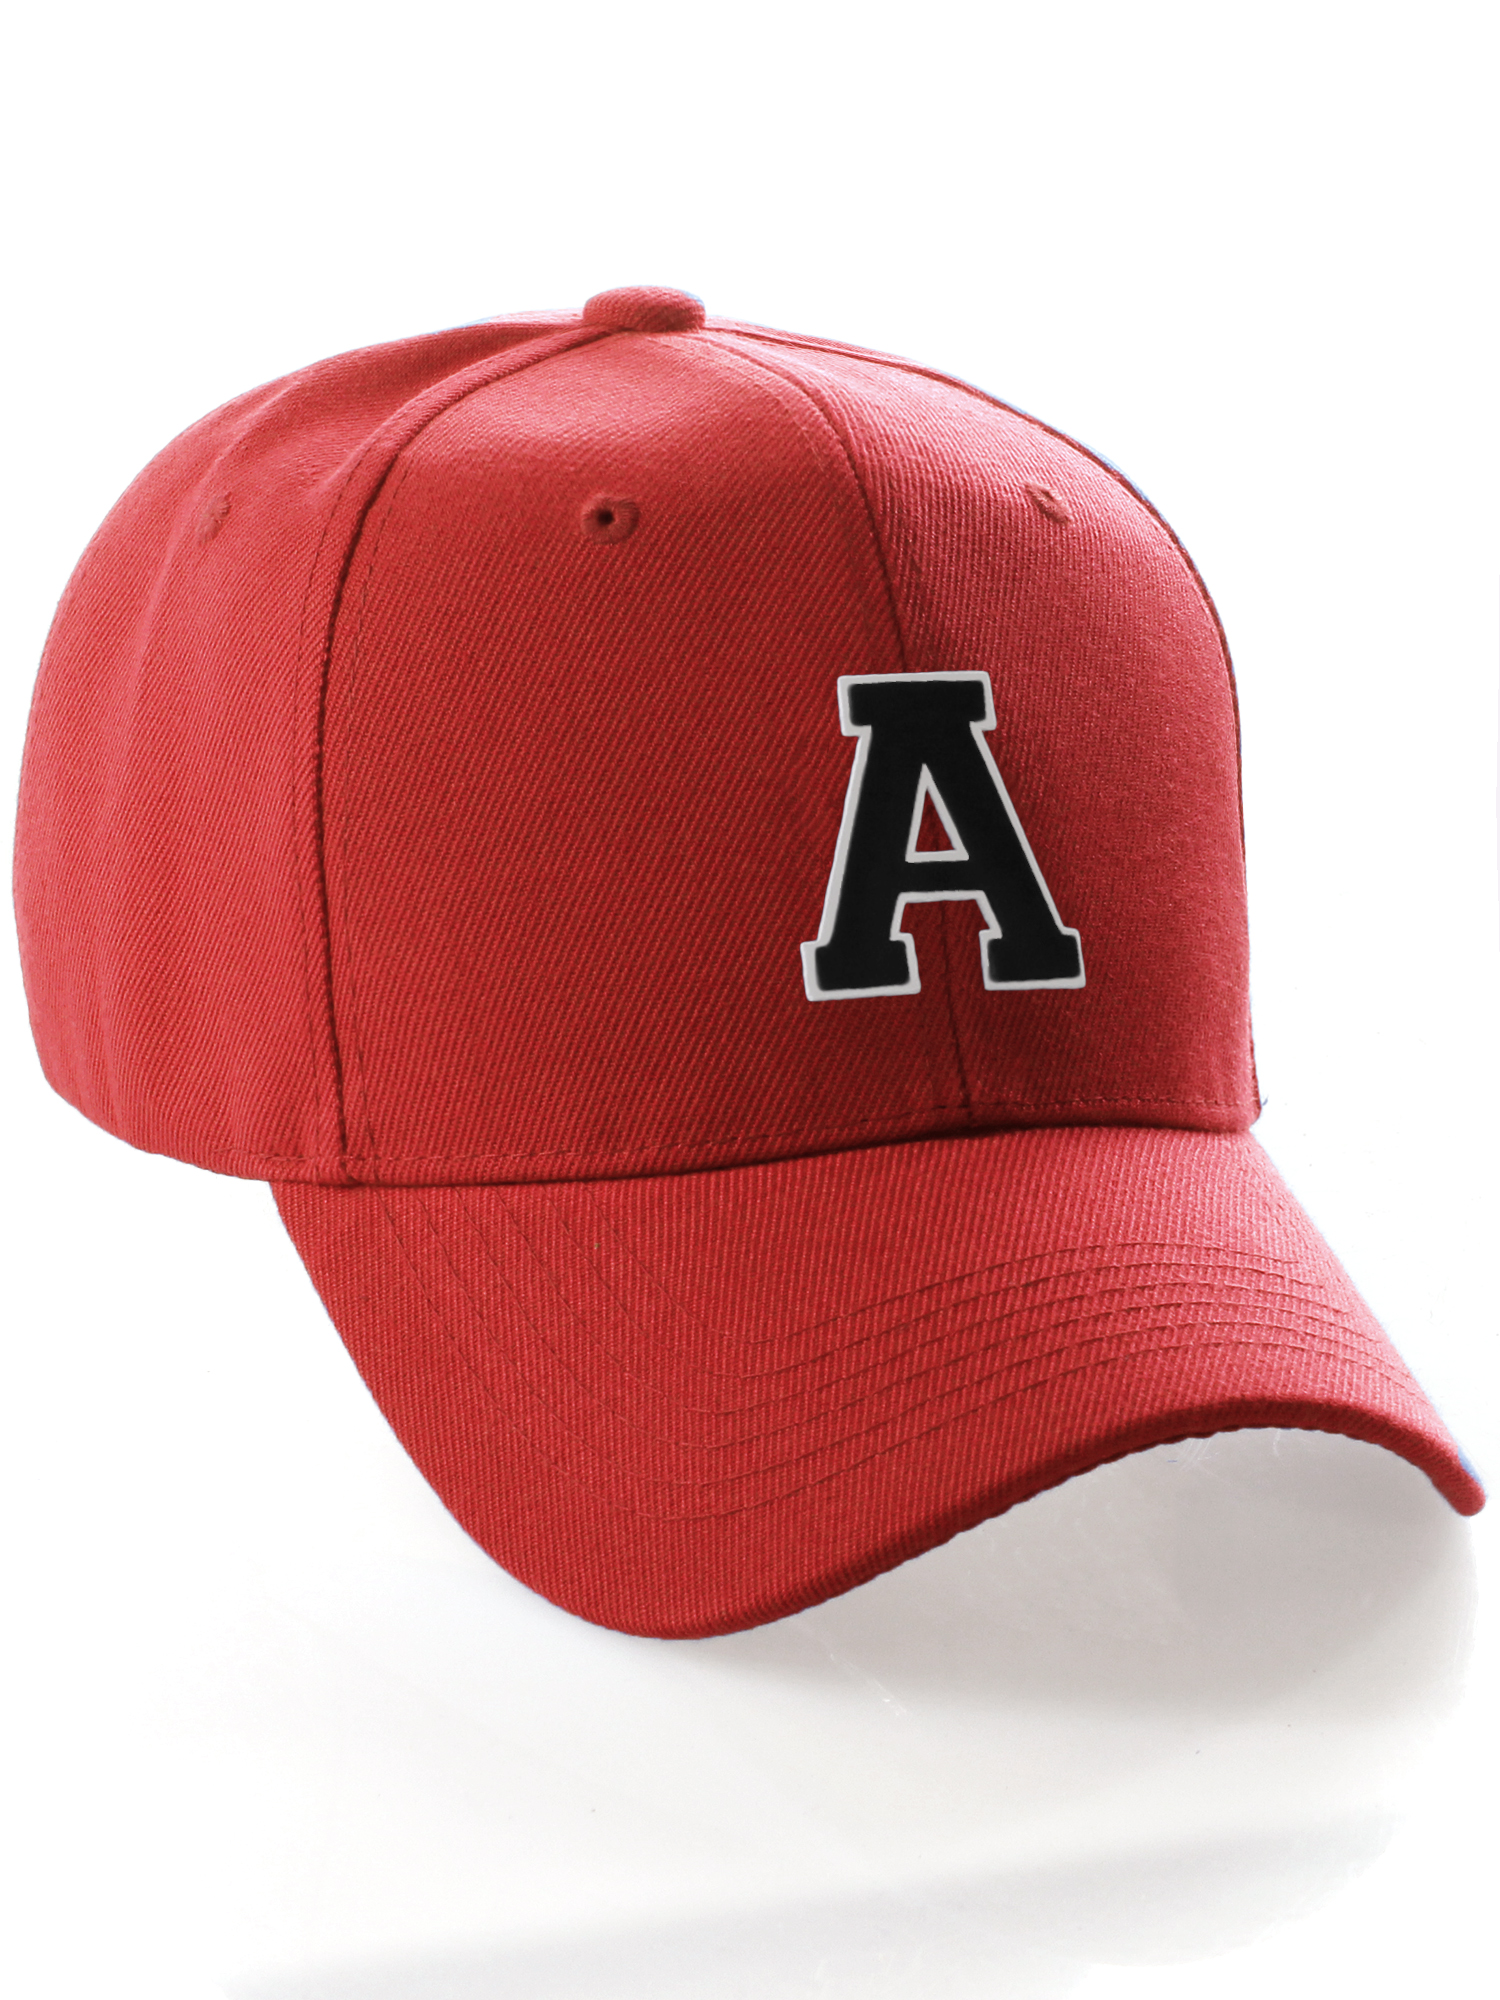 Classic 3D Raised Initial Letters A to Z Structured Baseball Hat Cap  Adjustable - Red Hat White Black Letter A 70acea672f23